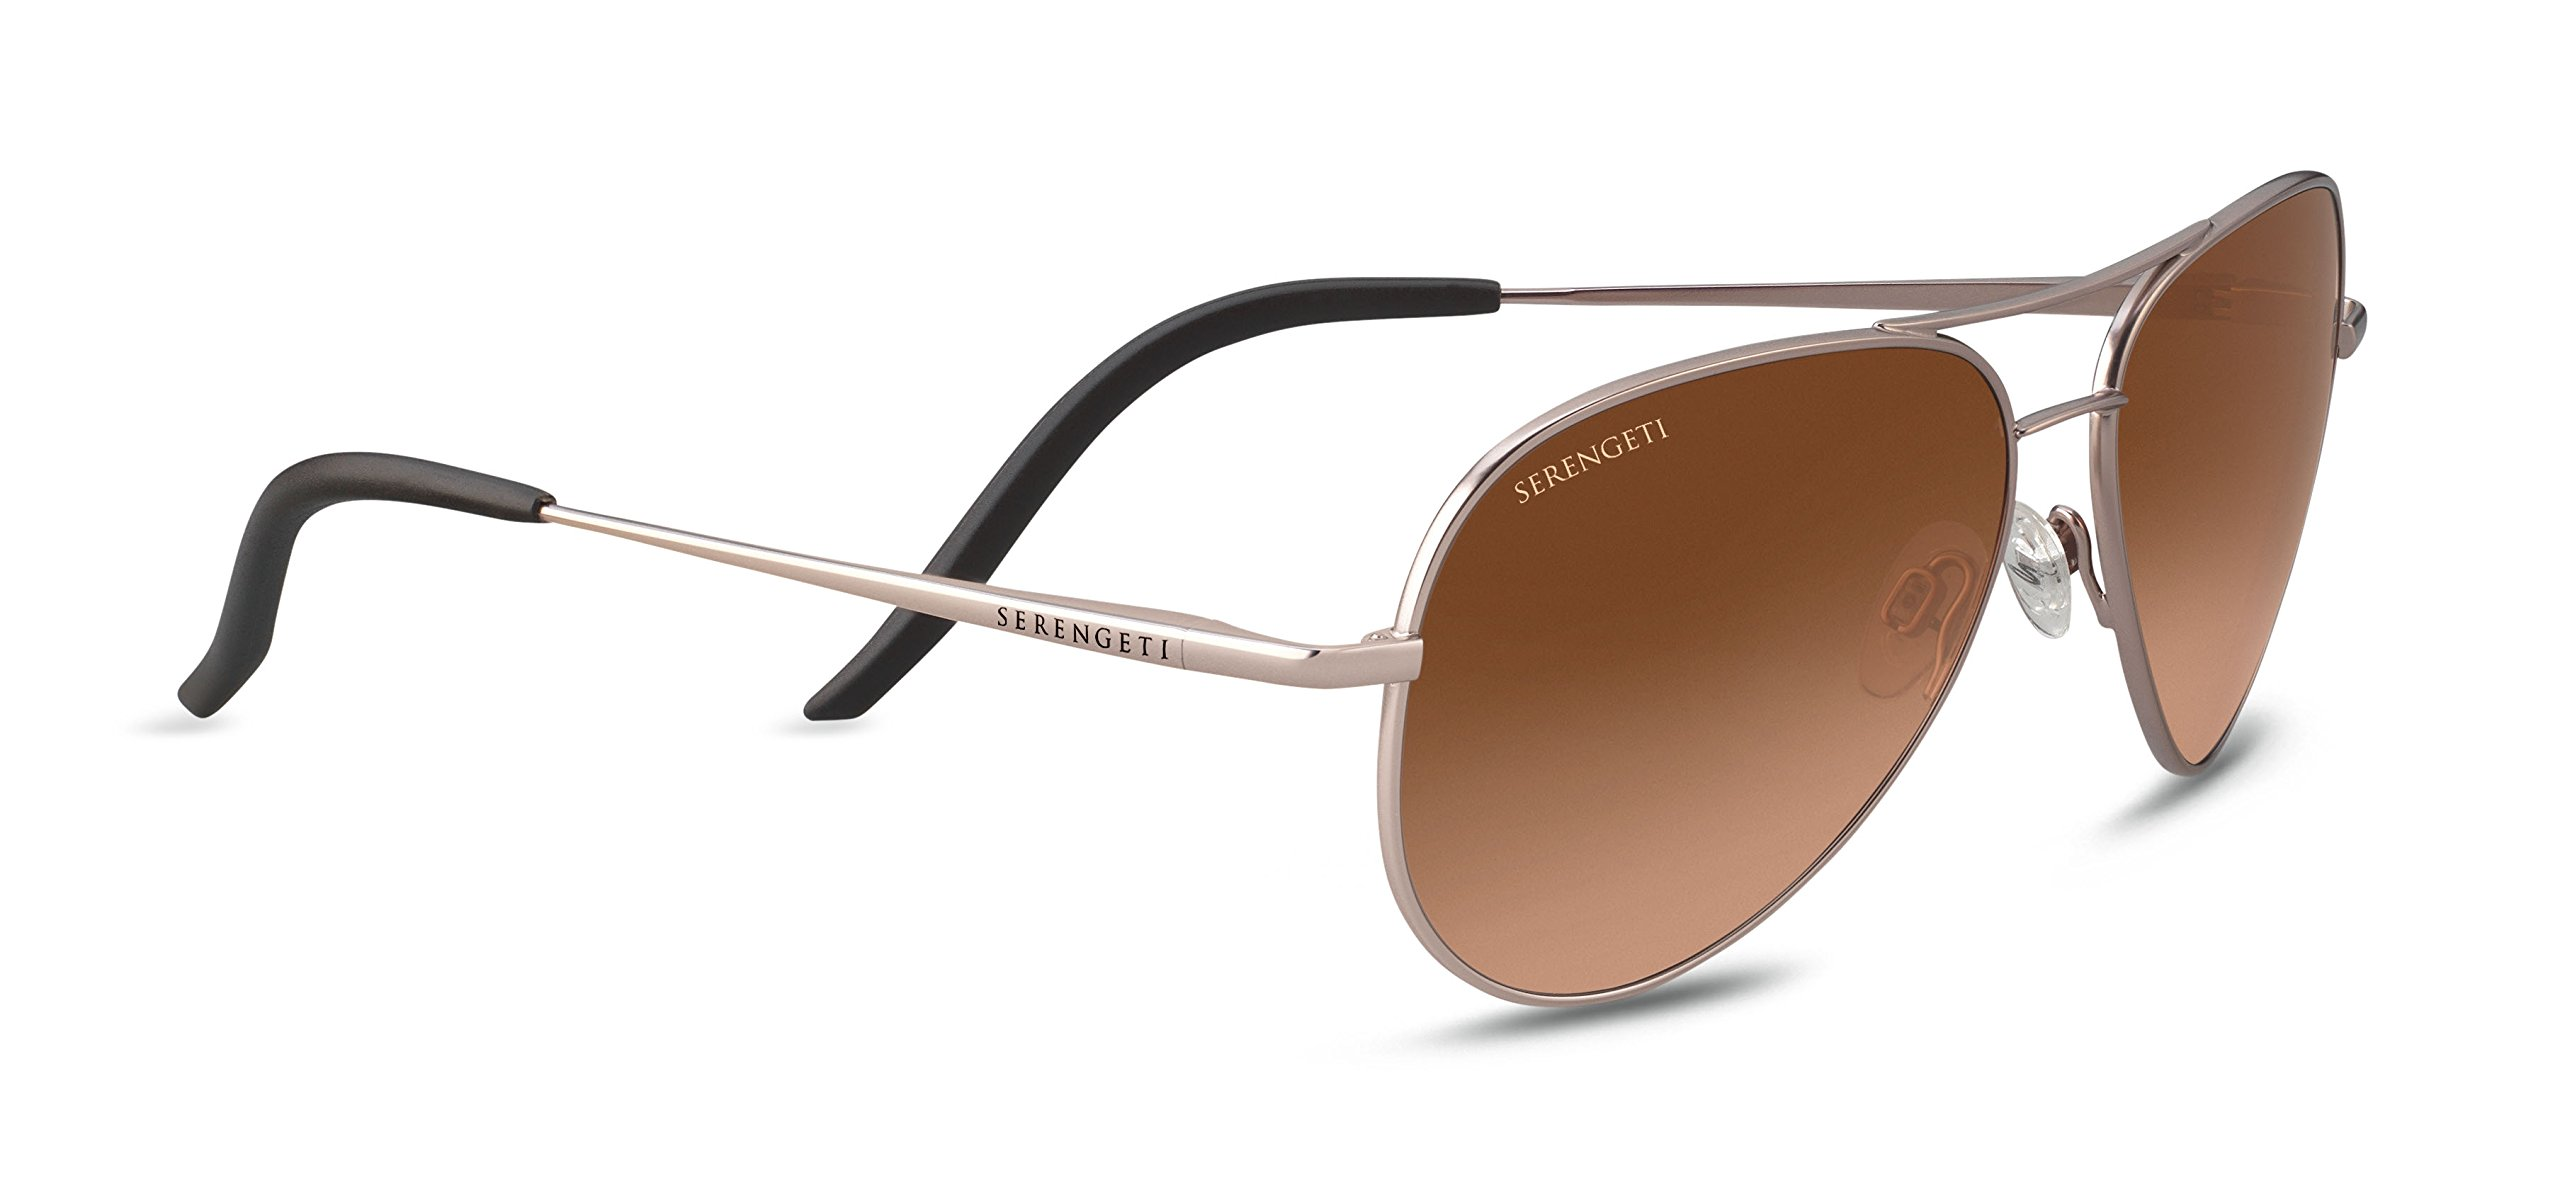 Serengeti Carrara Small Sunglasses Satin Rose Gold, Brown by Serengeti